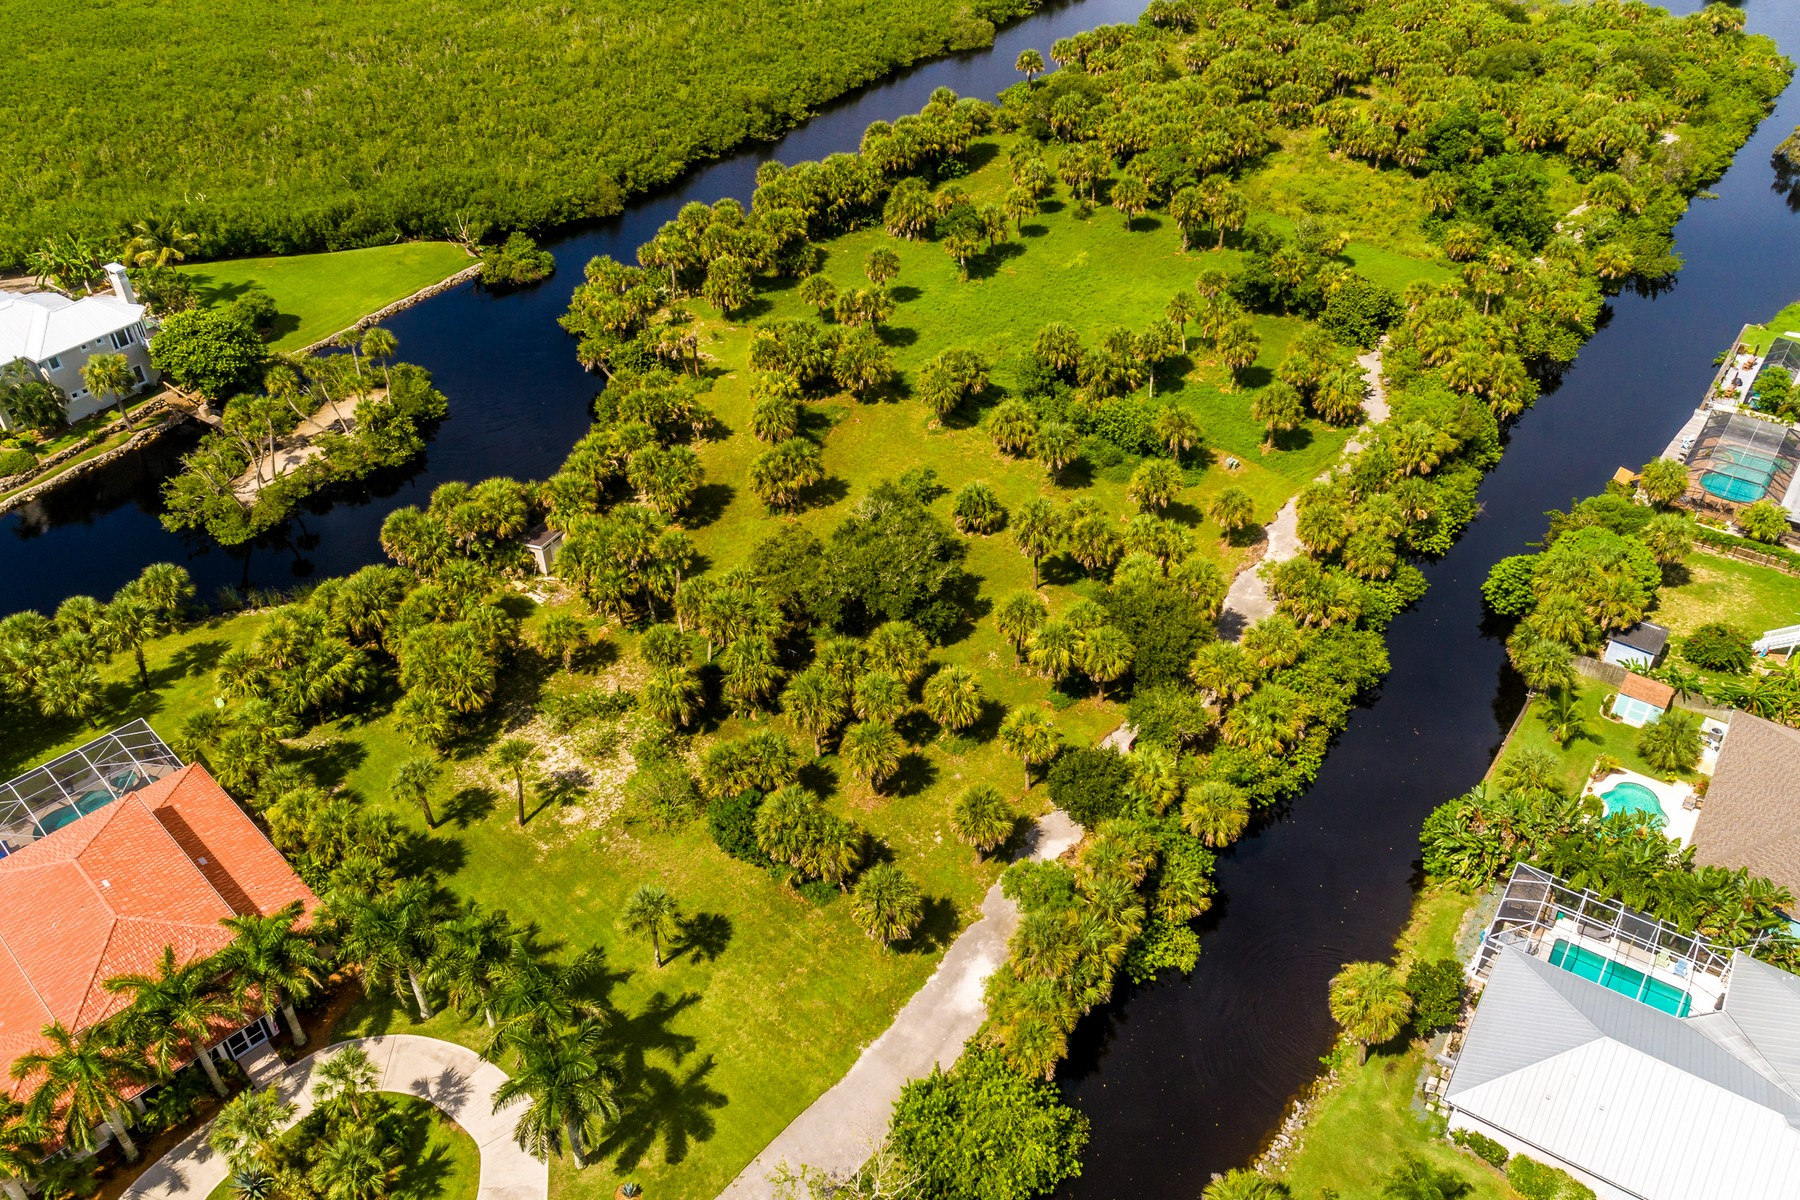 Land for Sale at 1.11 Acre Private Lot on Private, Gated Peninsula 211 Crystal Bay Lane Melbourne Beach, Florida 32951 United States